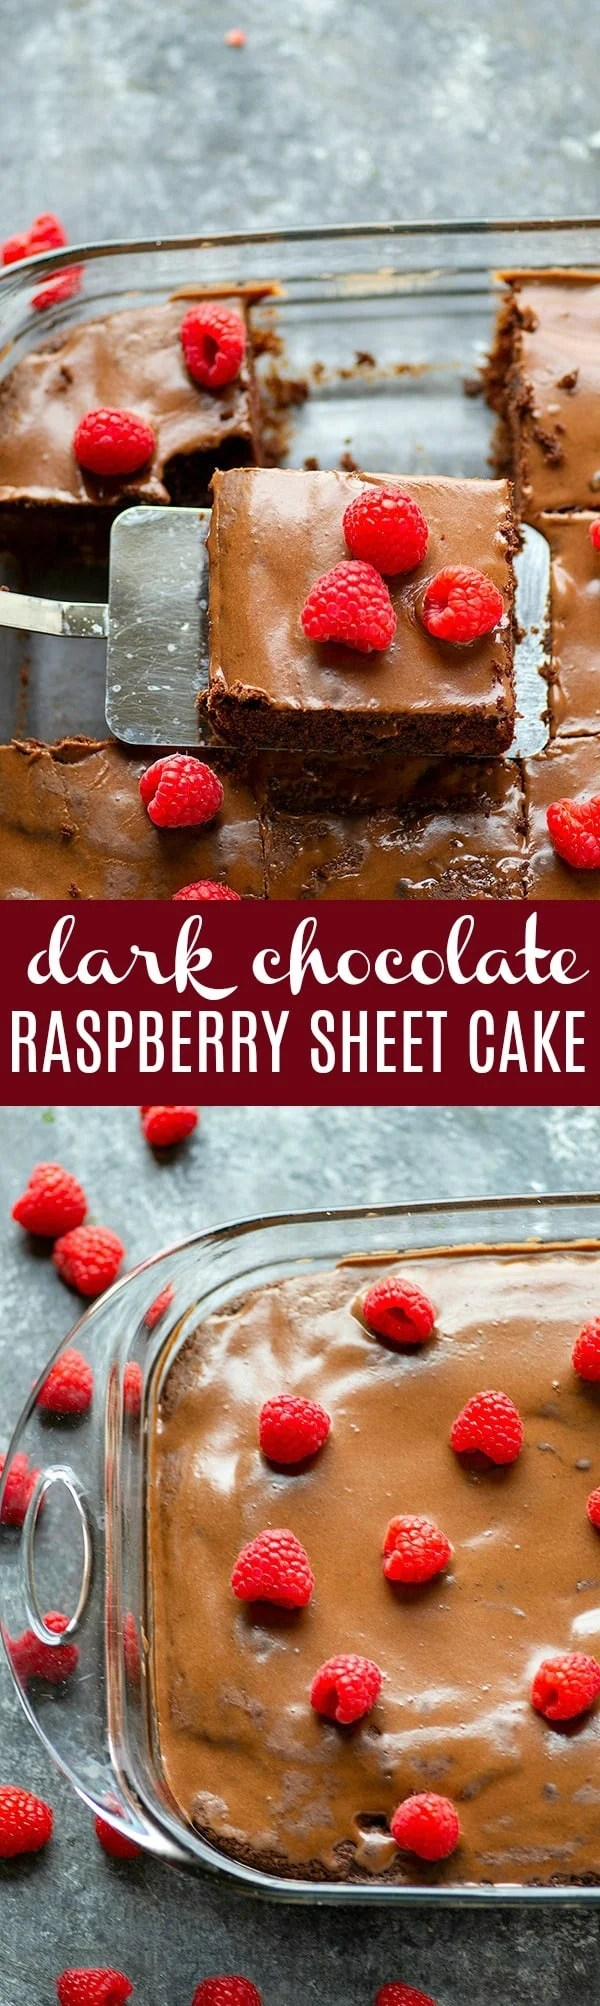 Dark Chocolate Raspberry Sheet Cake - Dark chocolate and raspberries are a match made in heaven in this beautiful dark chocolate raspberry sheet cake.